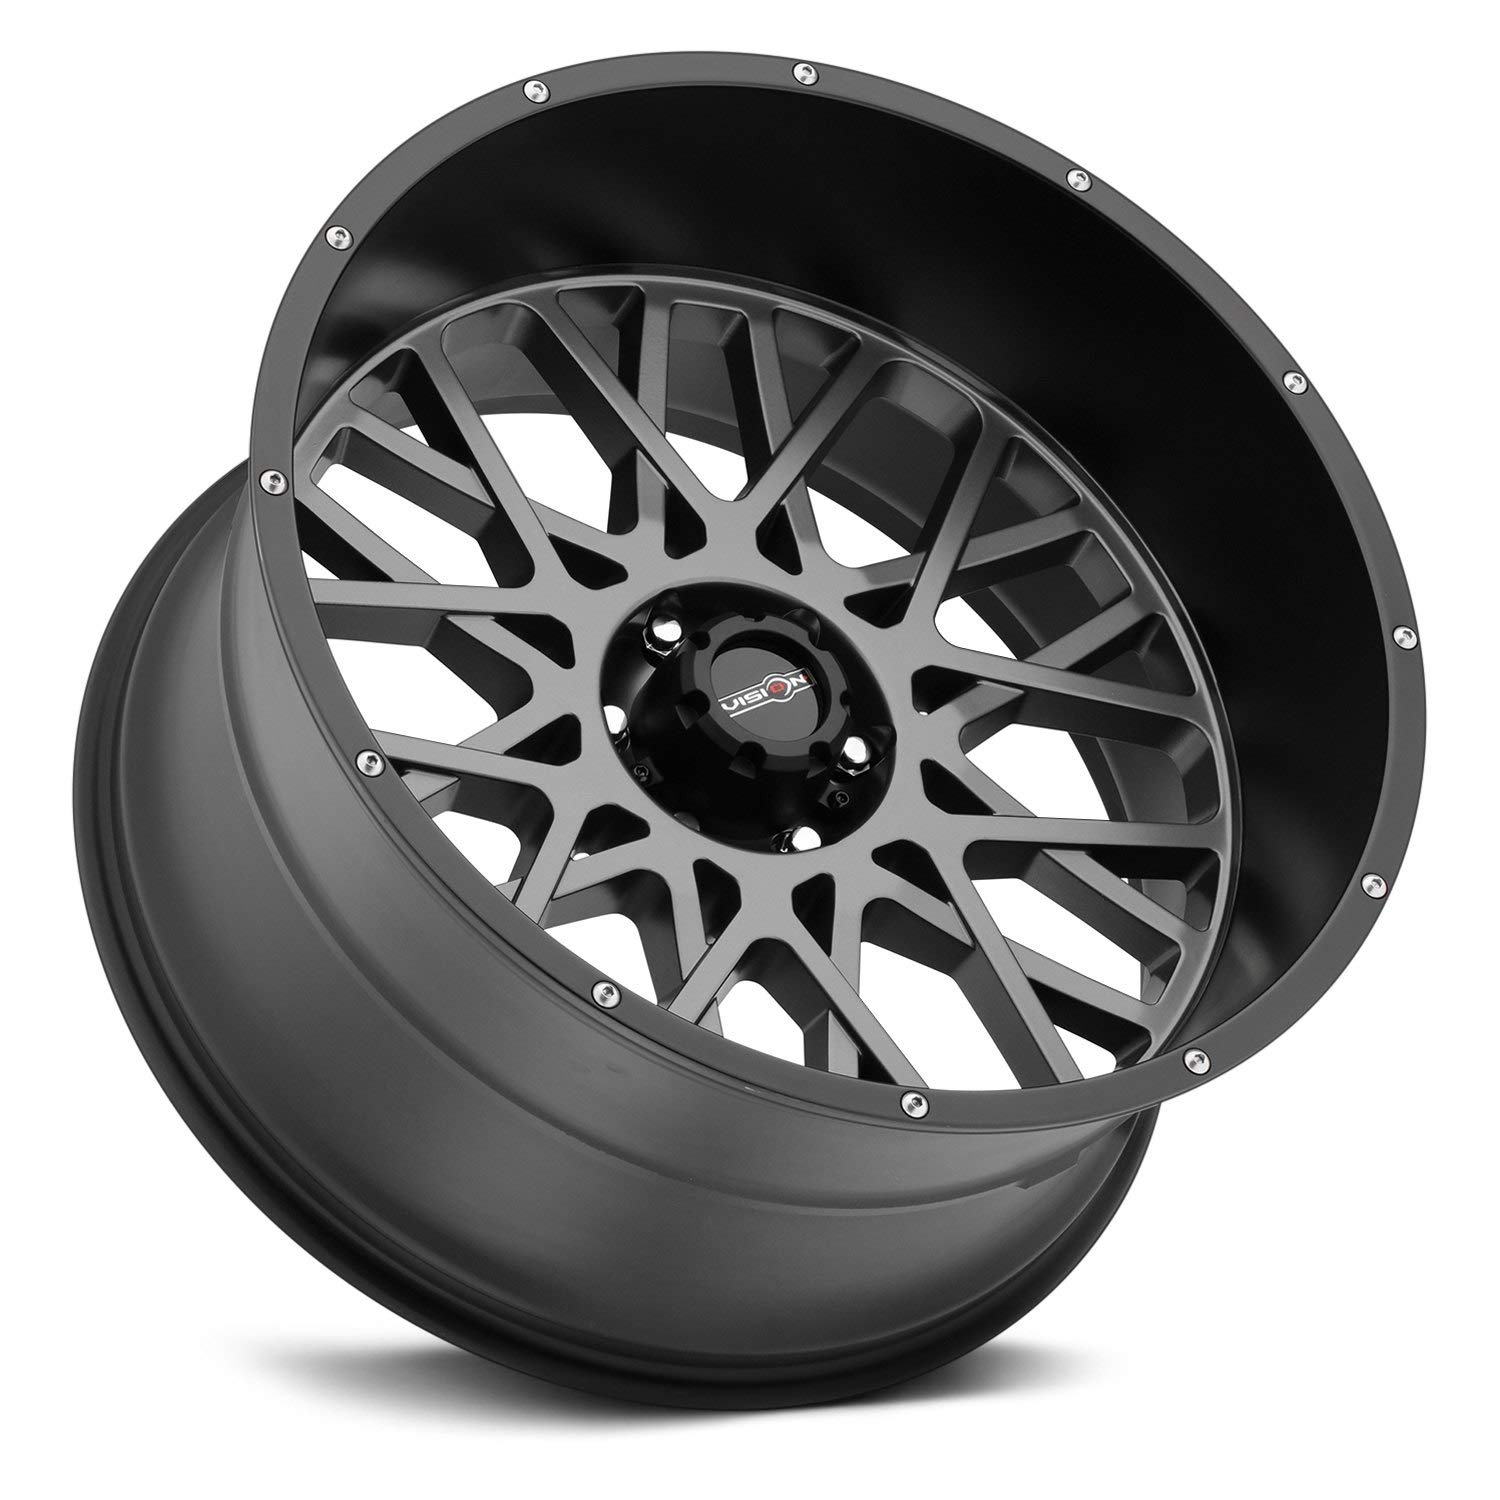 Rim 5x5.5 with a Partnumber 412-20285ABL-51 Vision Rocker 20x12 Gray Black Wheel 51mm Offset and a 108 Hub Bore